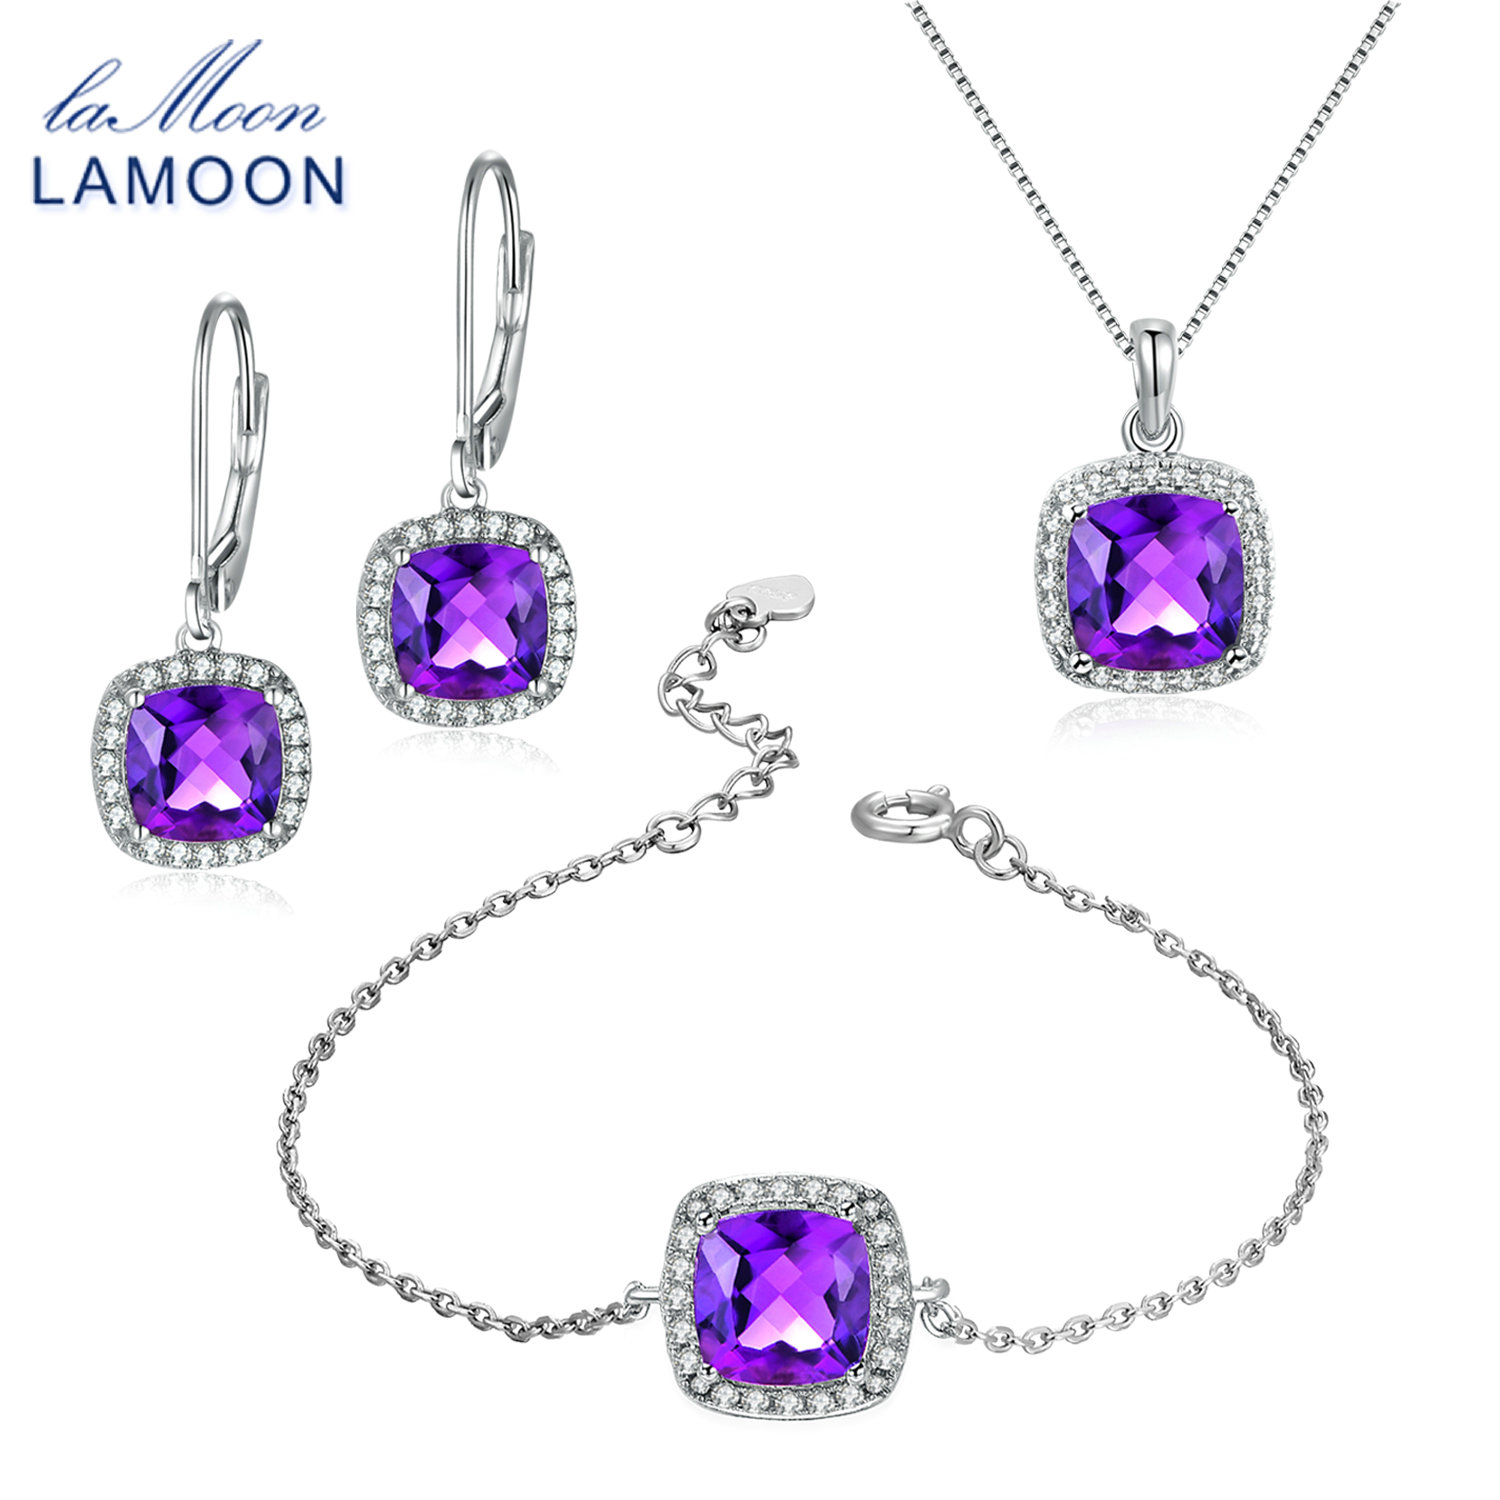 LAMOON 100% Natural Purple Amethyst 925 Sterling Silver Fine Jewelry Set For Women Earring Necklace Bracelet for Party V001-4LAMOON 100% Natural Purple Amethyst 925 Sterling Silver Fine Jewelry Set For Women Earring Necklace Bracelet for Party V001-4